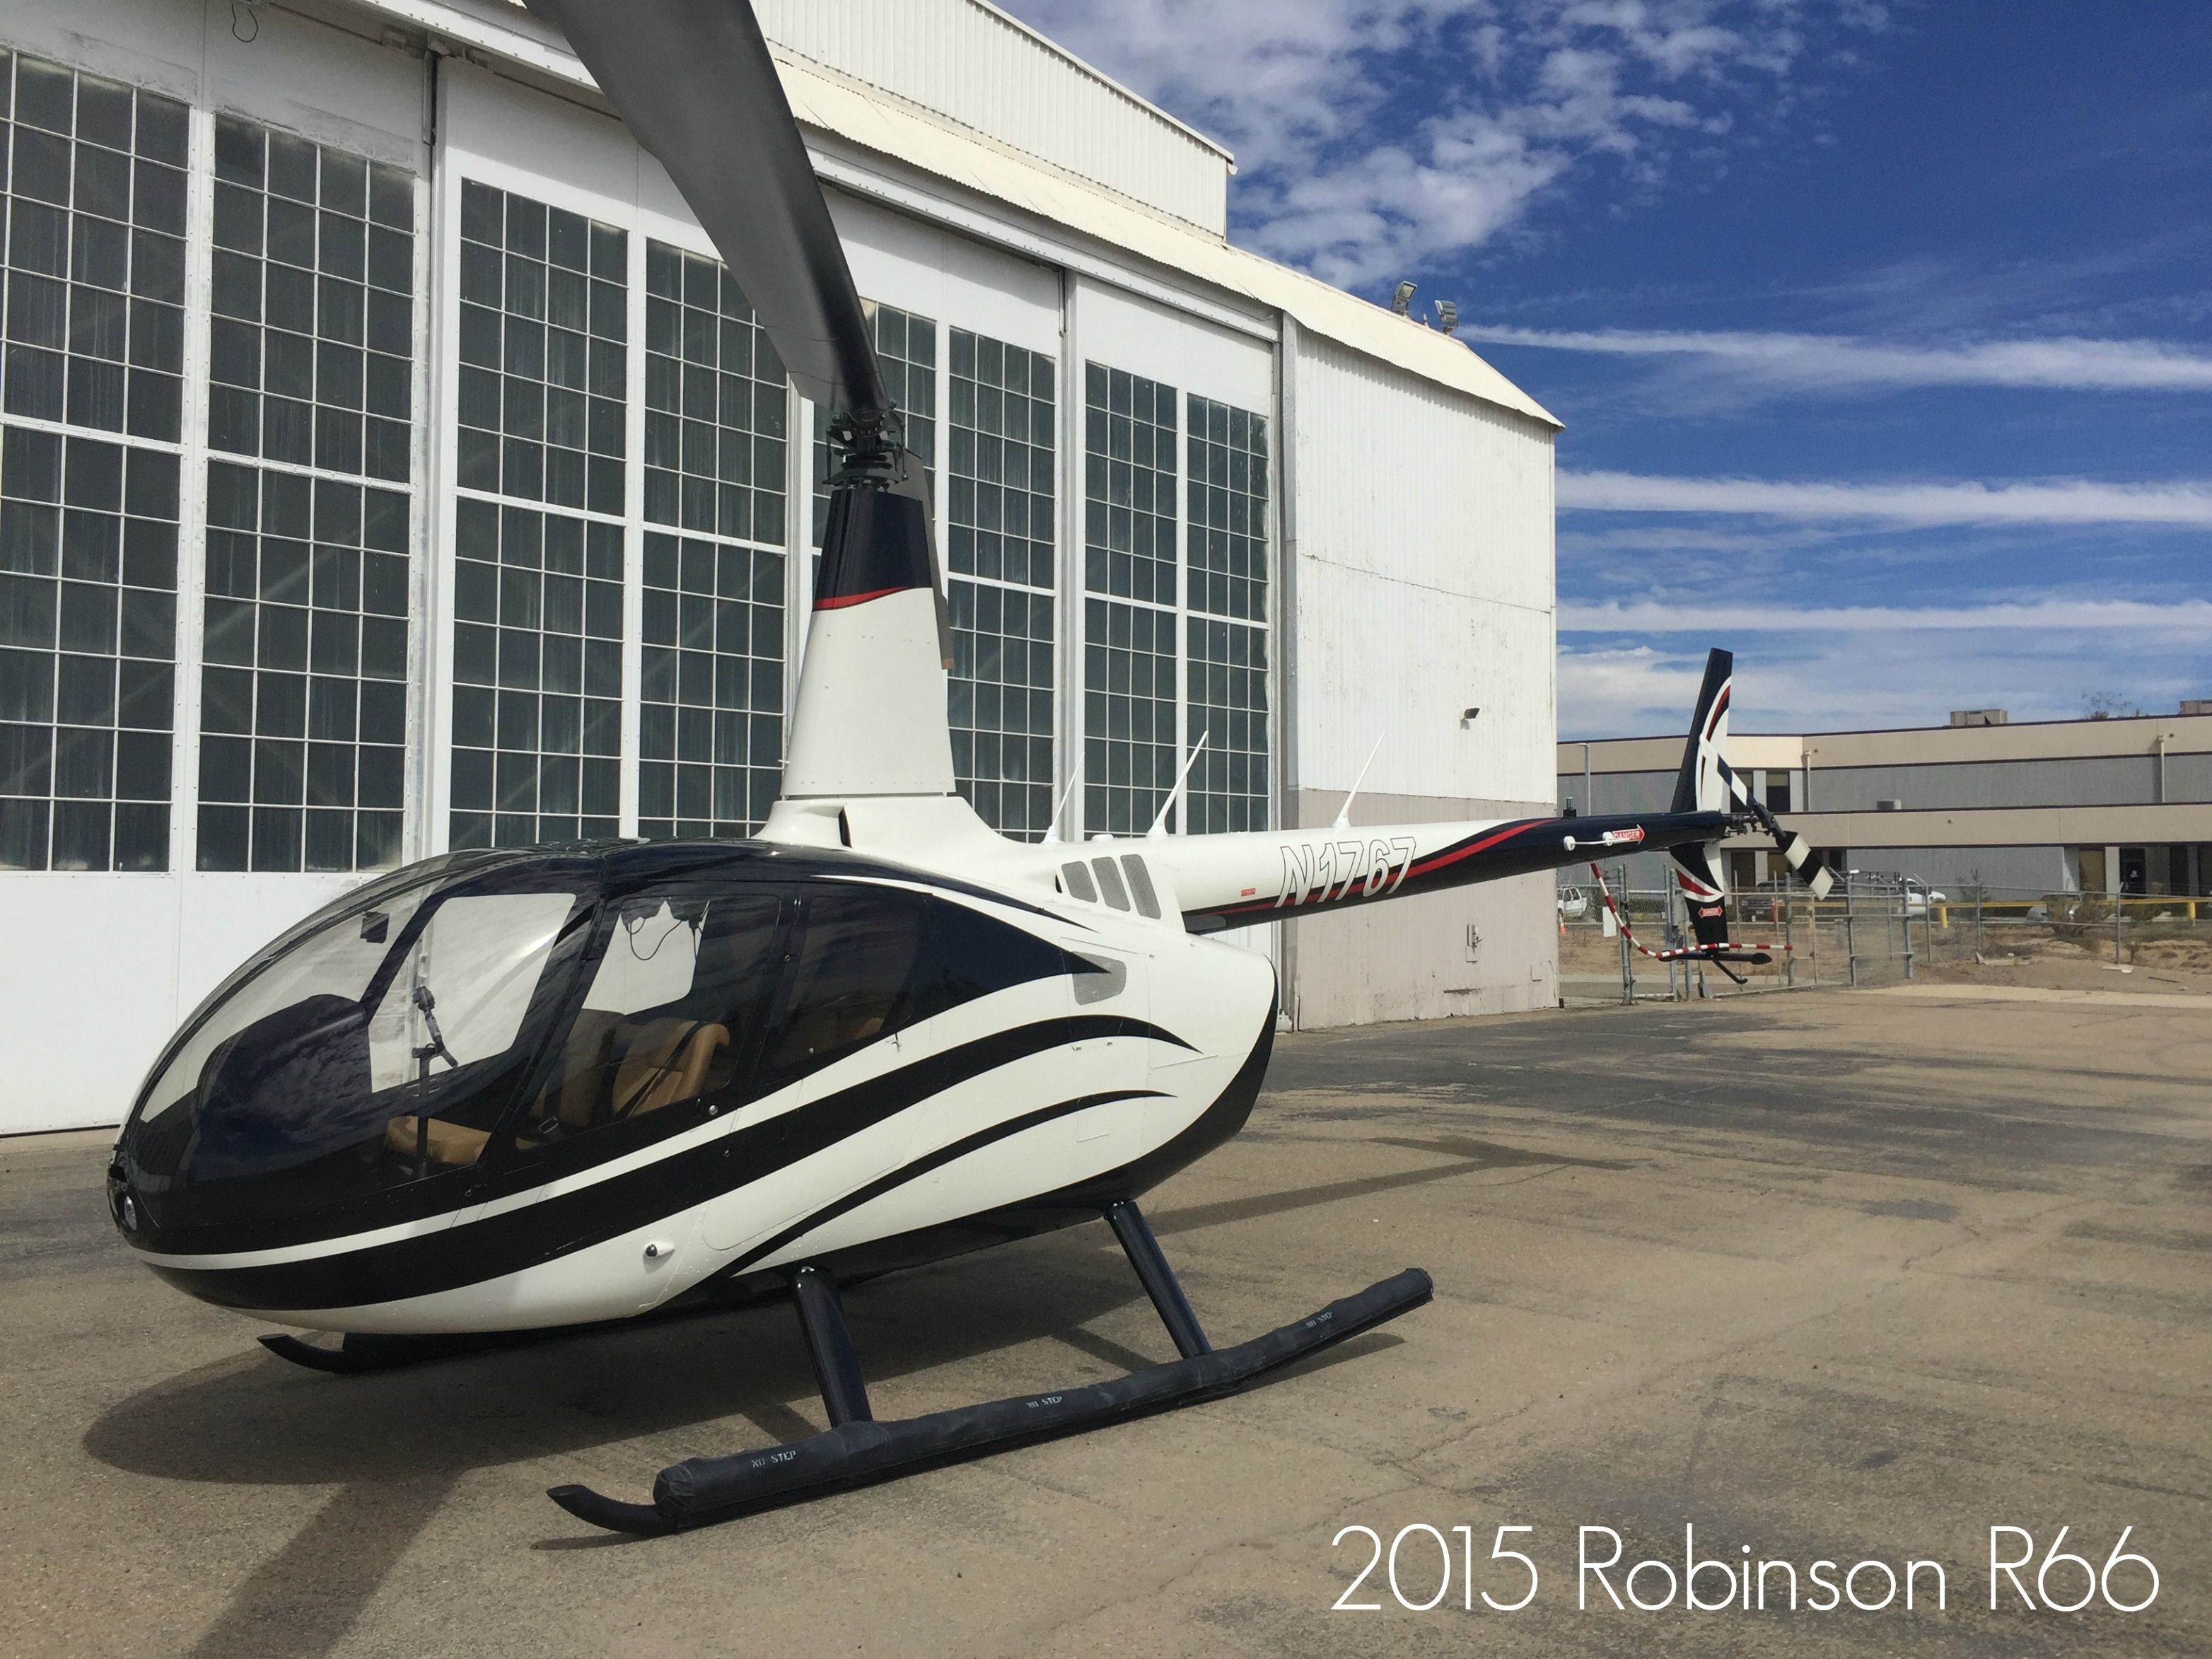 Elicottero R66 : Robinson r available at trade a plane wertoloty